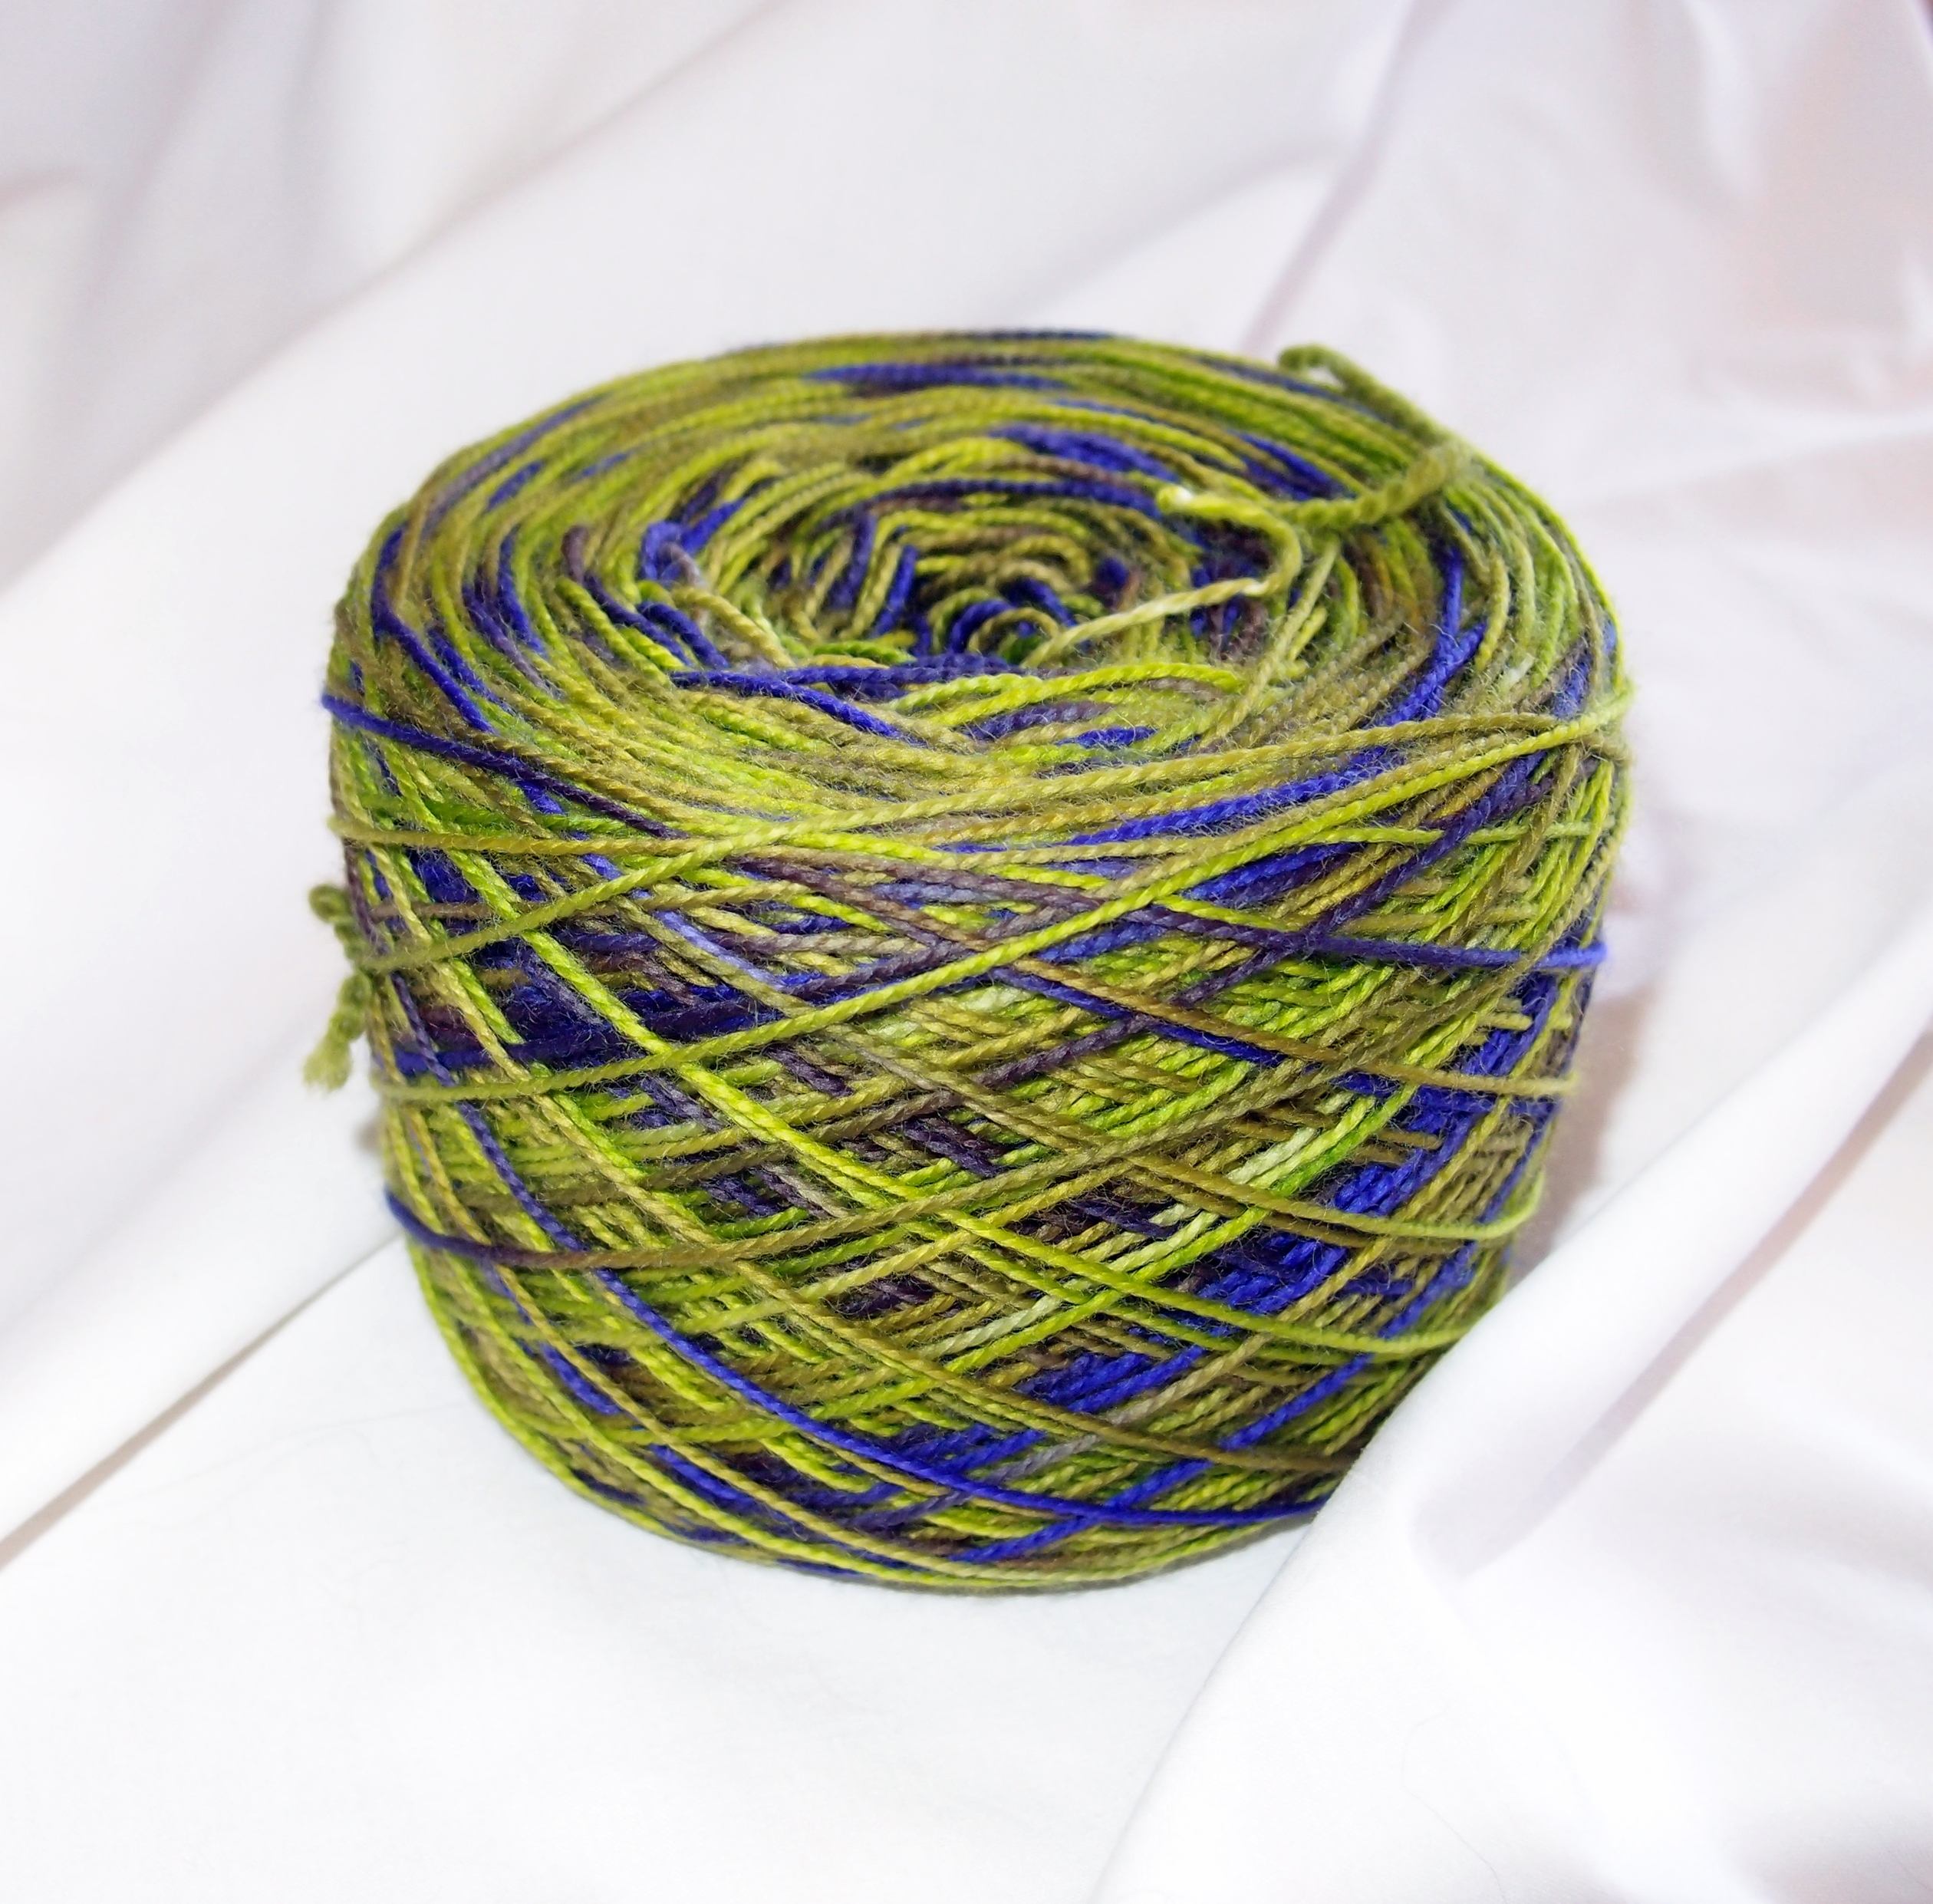 How To Wind A Yarn Cake By Hand